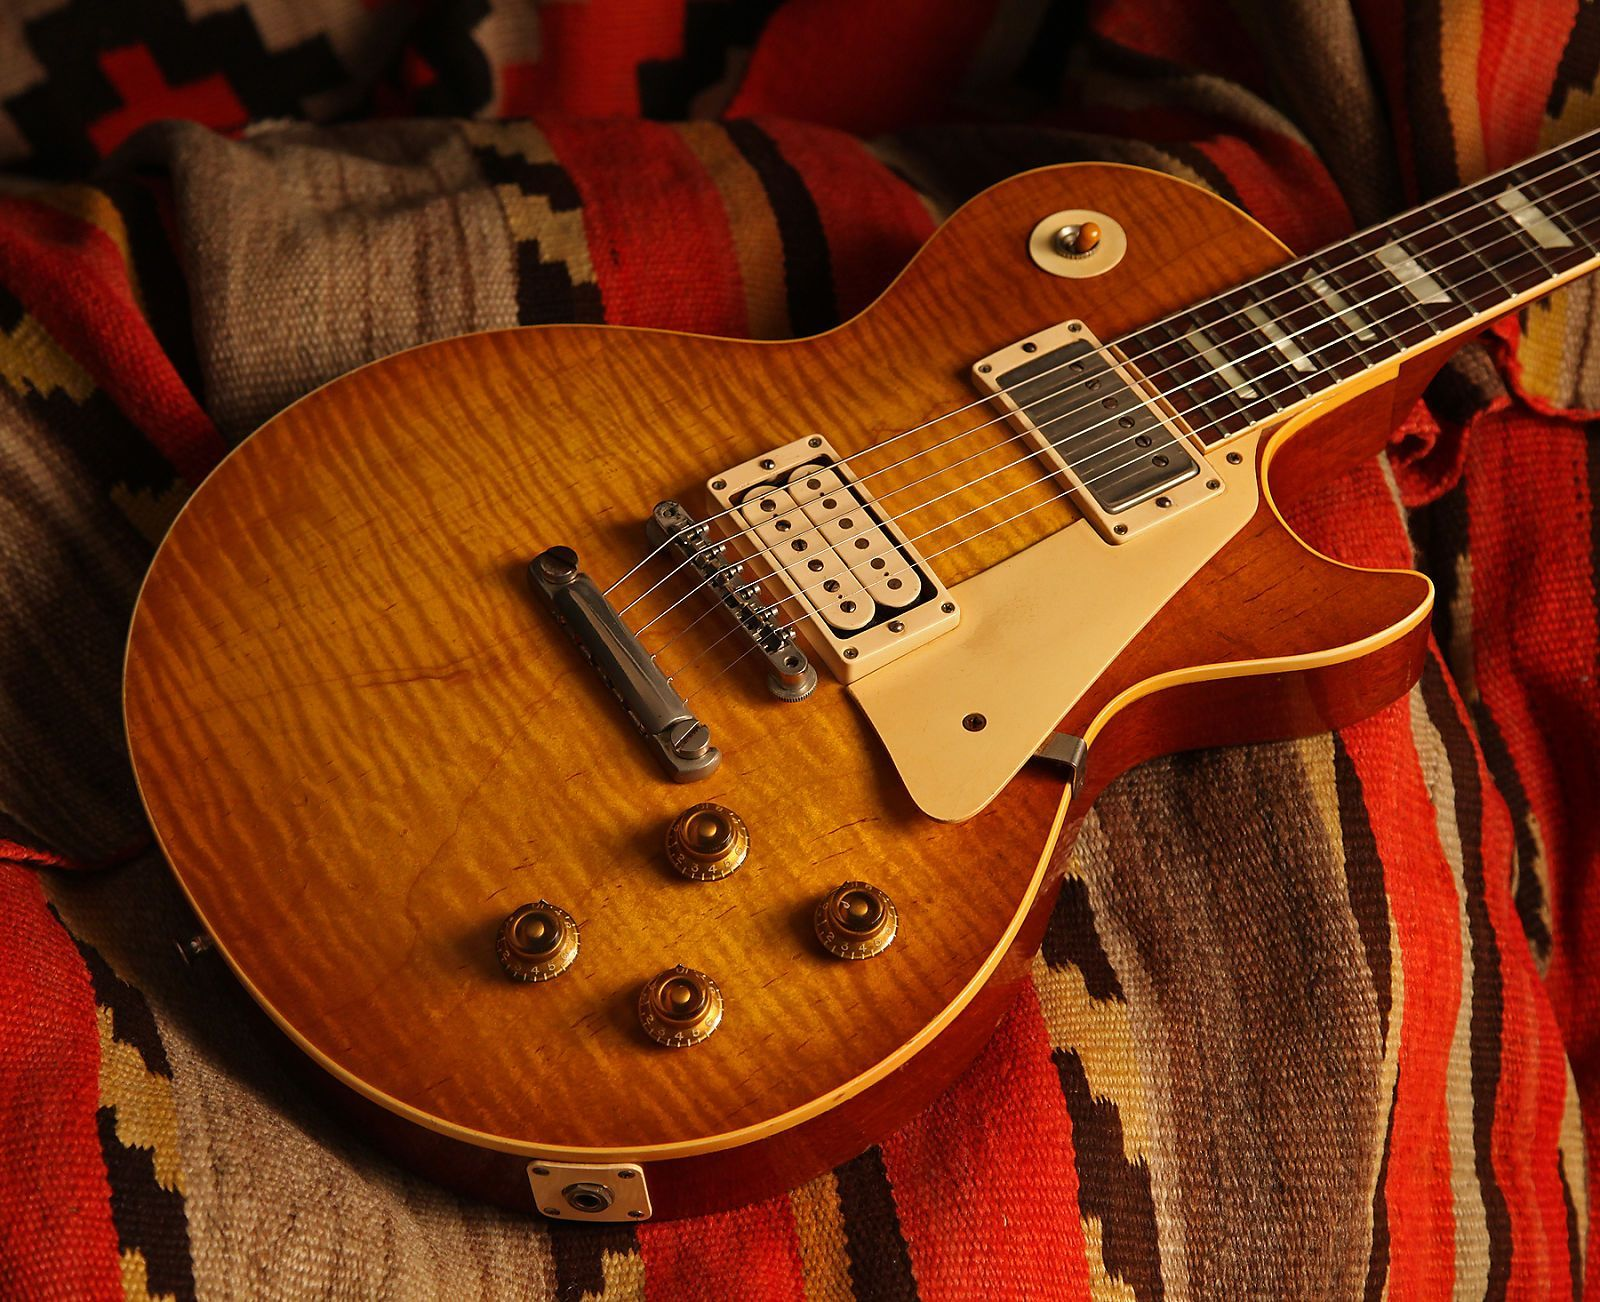 This Highly Flamed Example Is One Of The Best Les Pauls We Ve Ever Had Features Two Double White Paf Pickups Inc Gibson Les Paul Les Paul Les Paul Standard